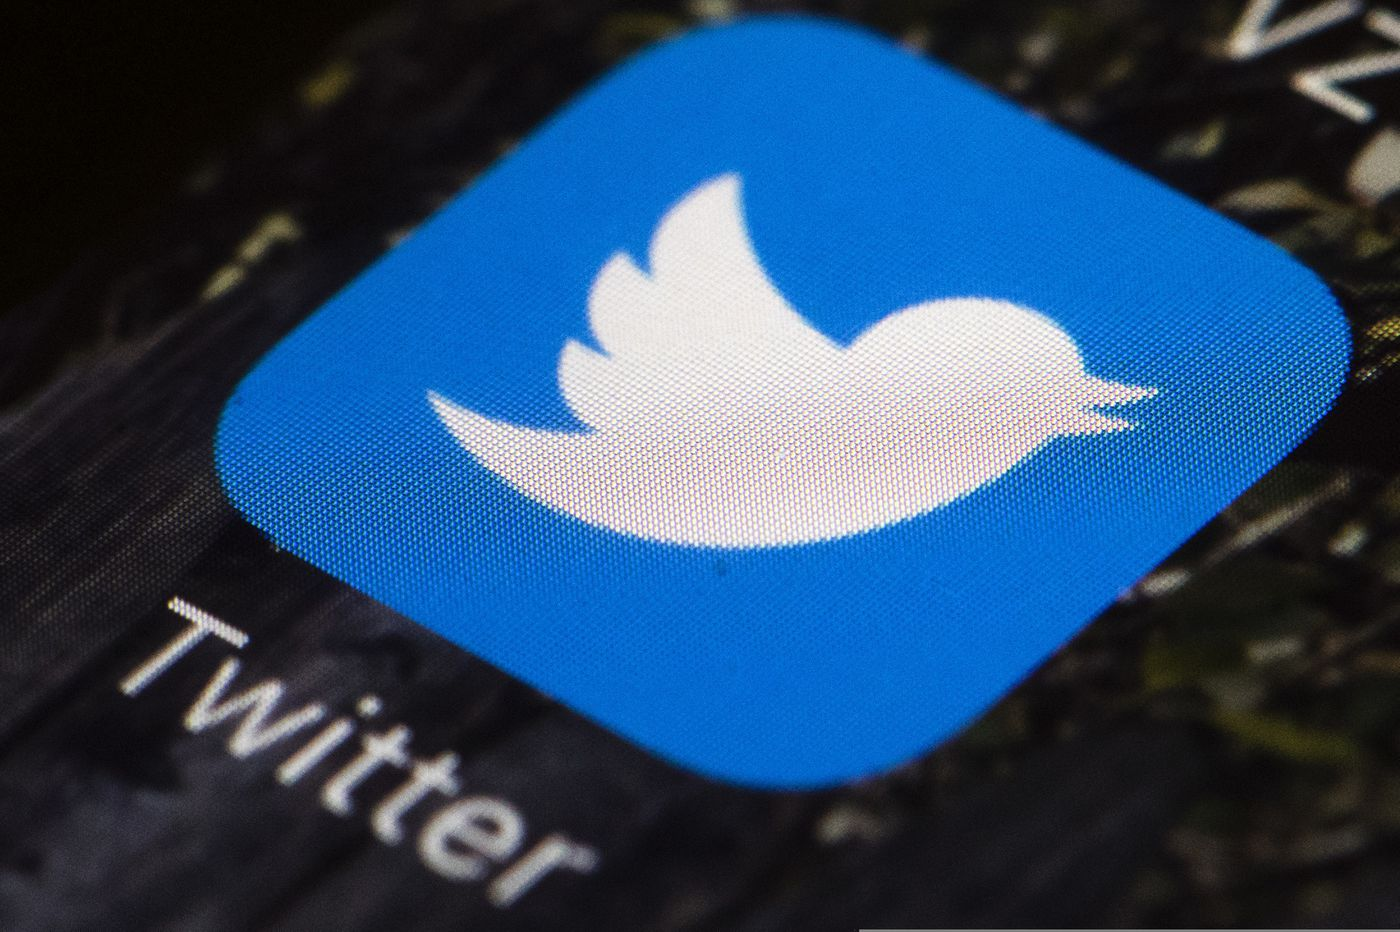 Florida teenager arrested in Tampa for massive Twitter hack, Bitcoin theft